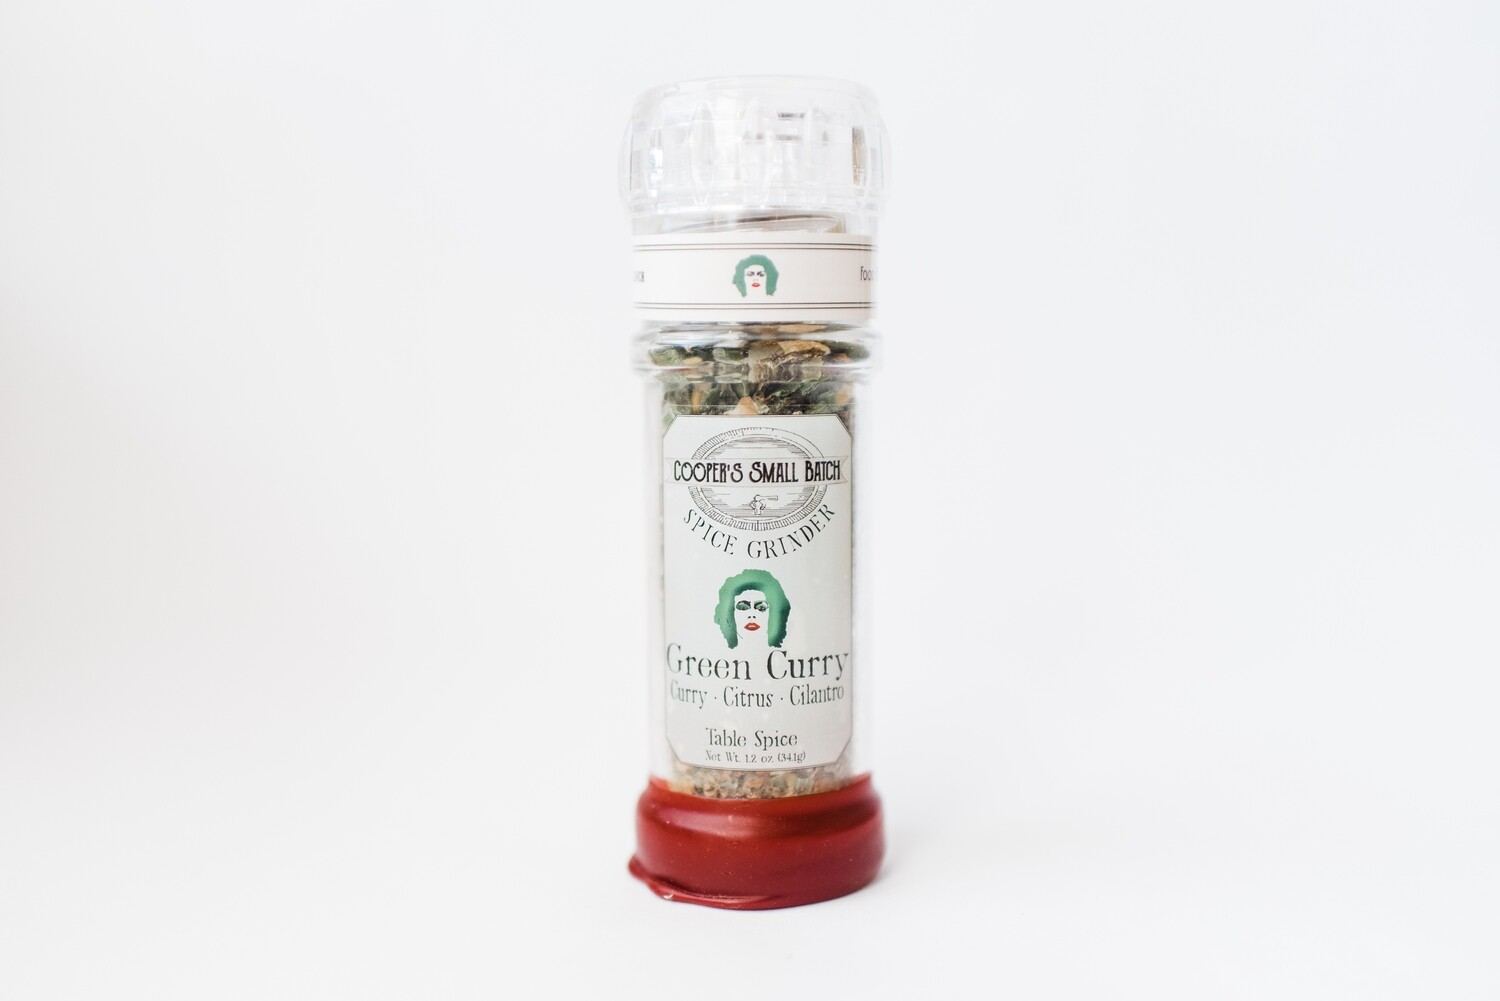 Green Curry Spice Grinder